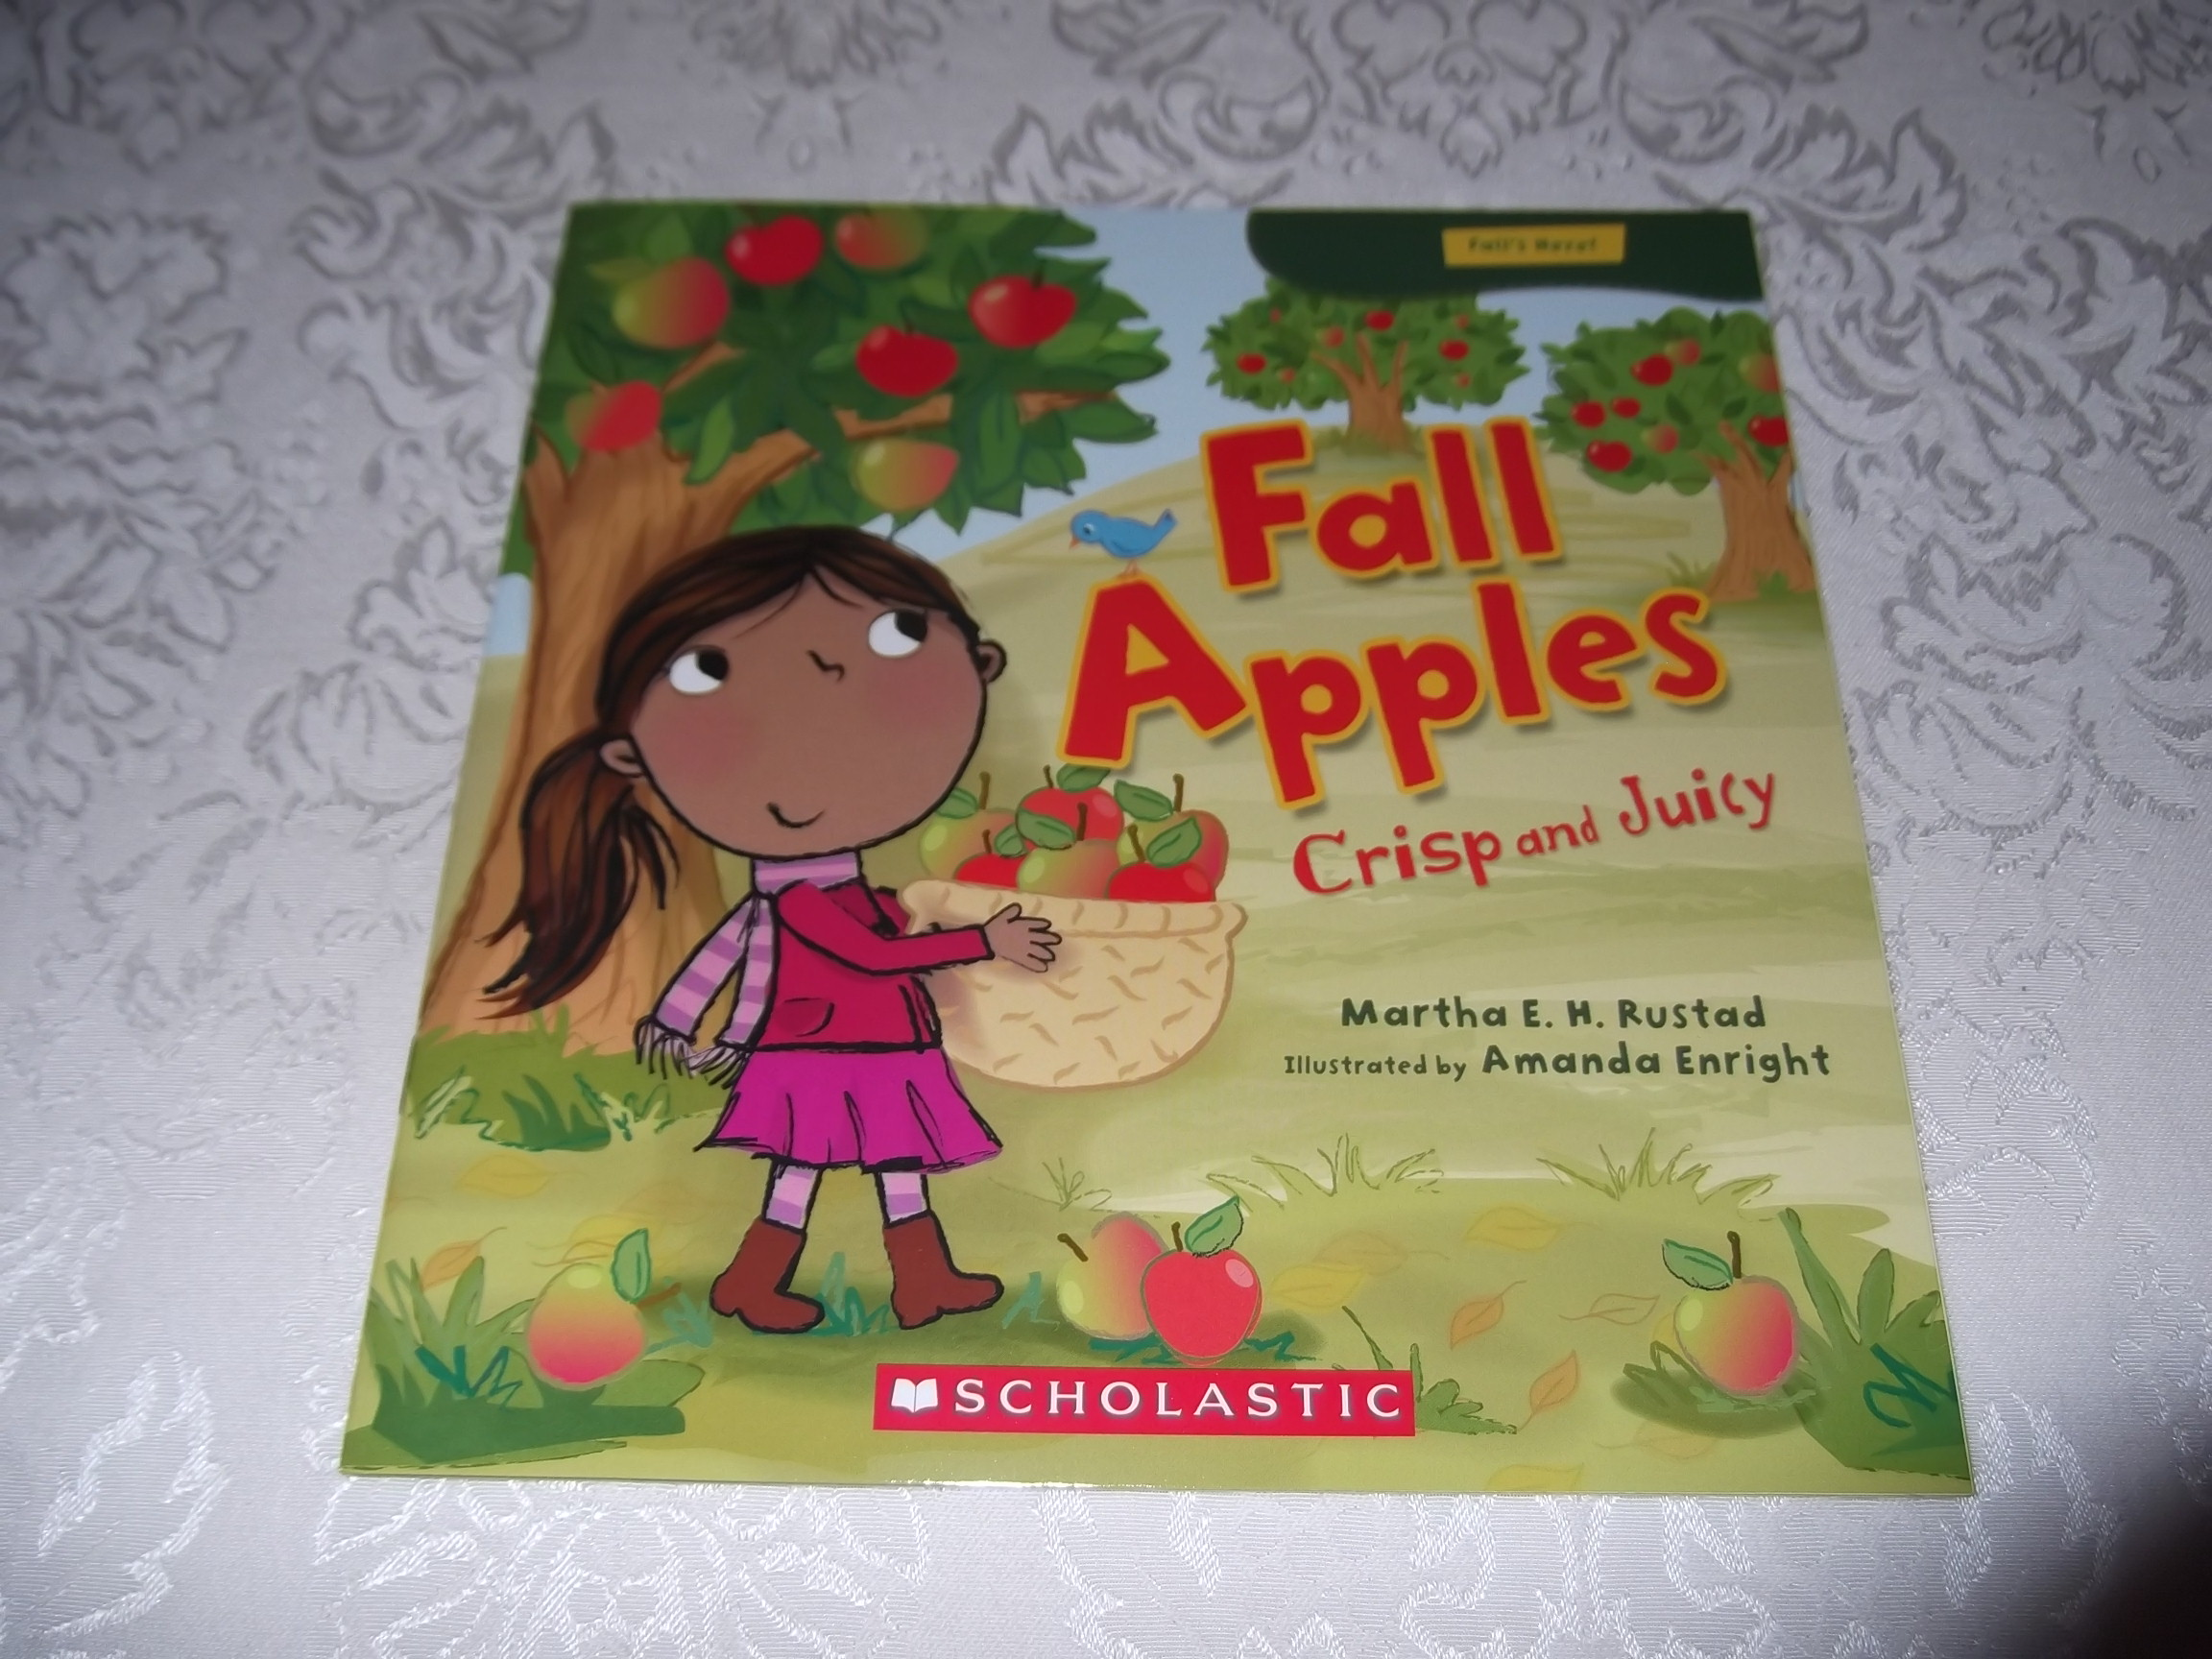 Fall Apples Crisp and Juicy Martha E. H. Rustad Brand New Softcover